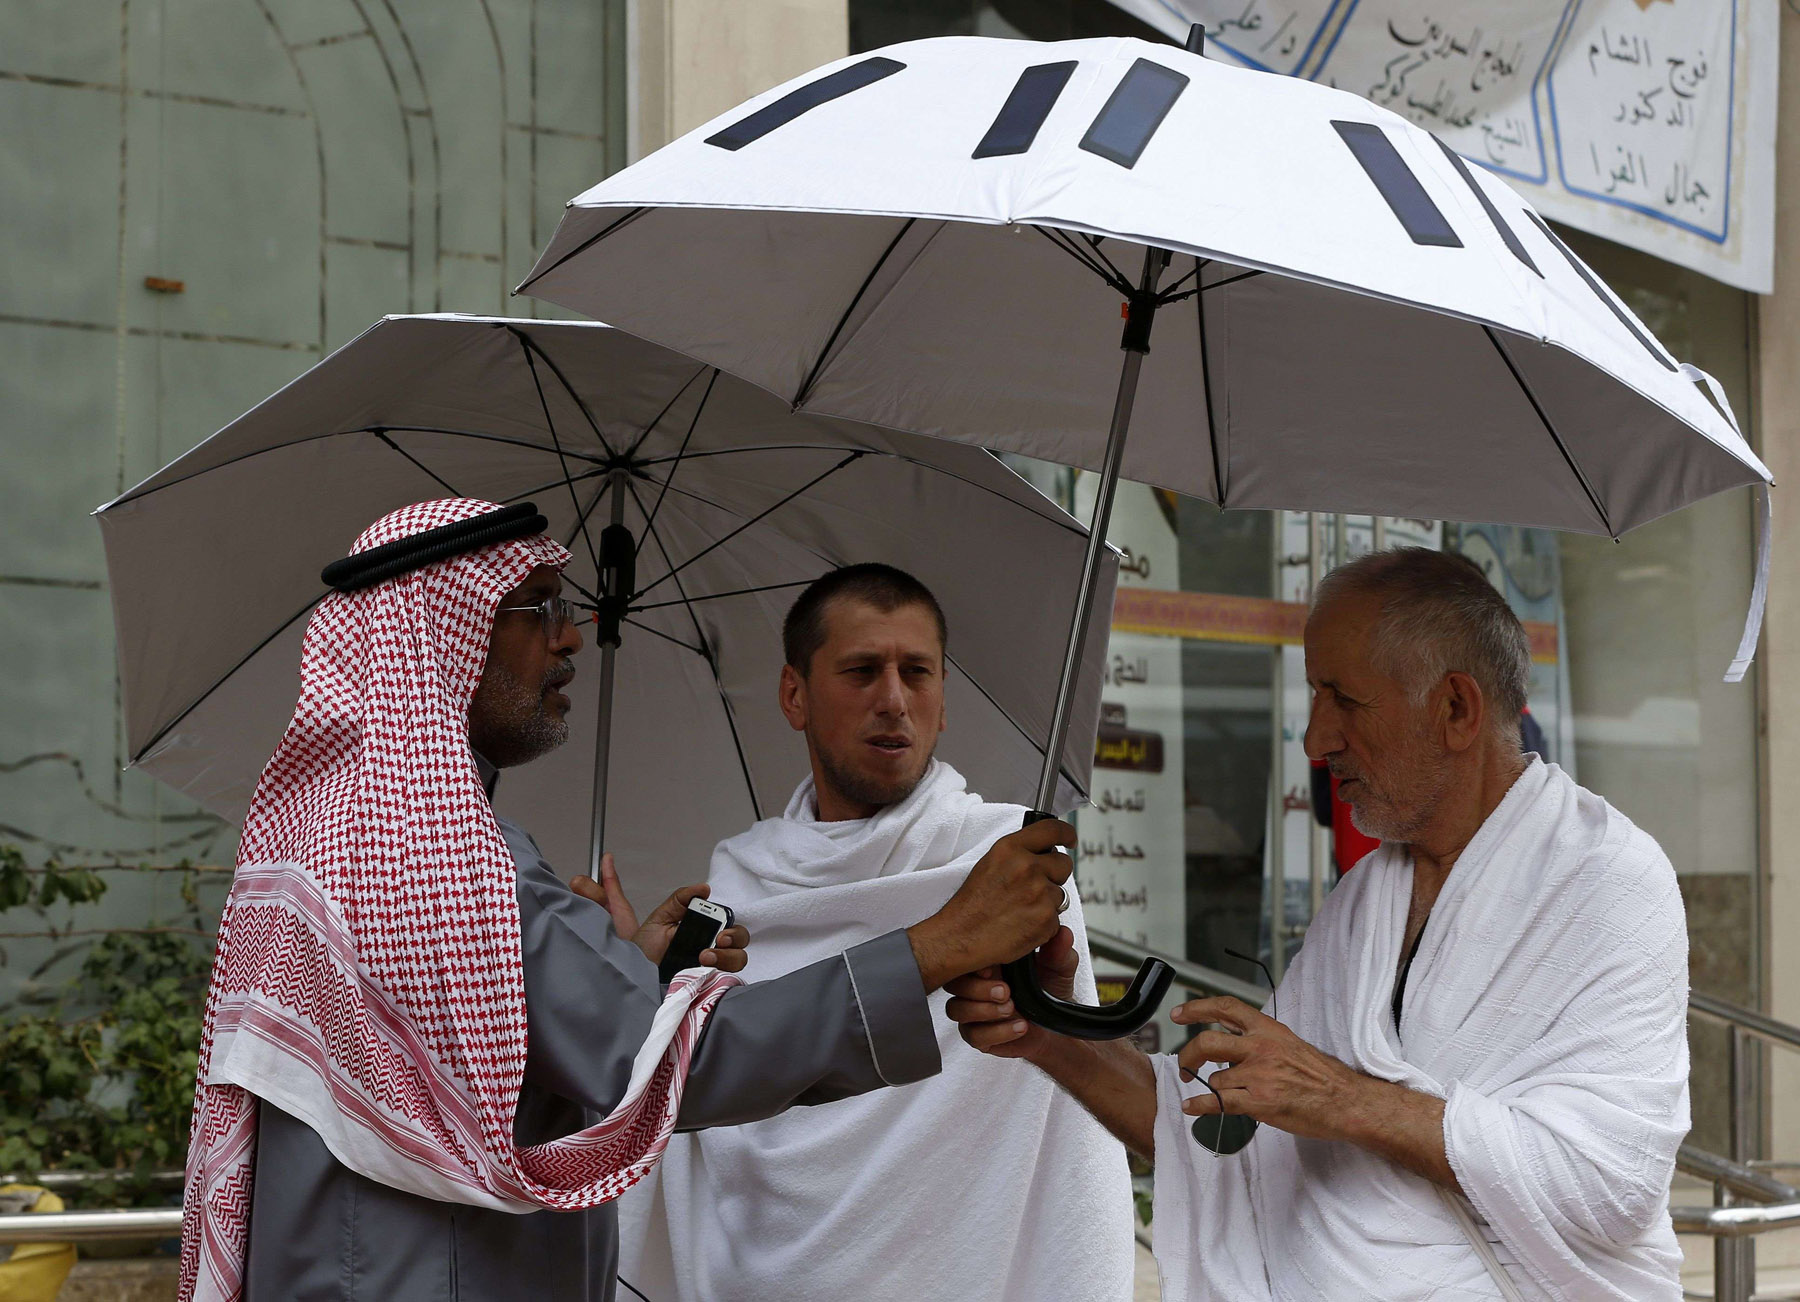 A Saudi engineer (L) shows pilgrims a smart umbrella, which uses solar energy to cool the user, in the Saudi holy city of Mecca. (AFP)